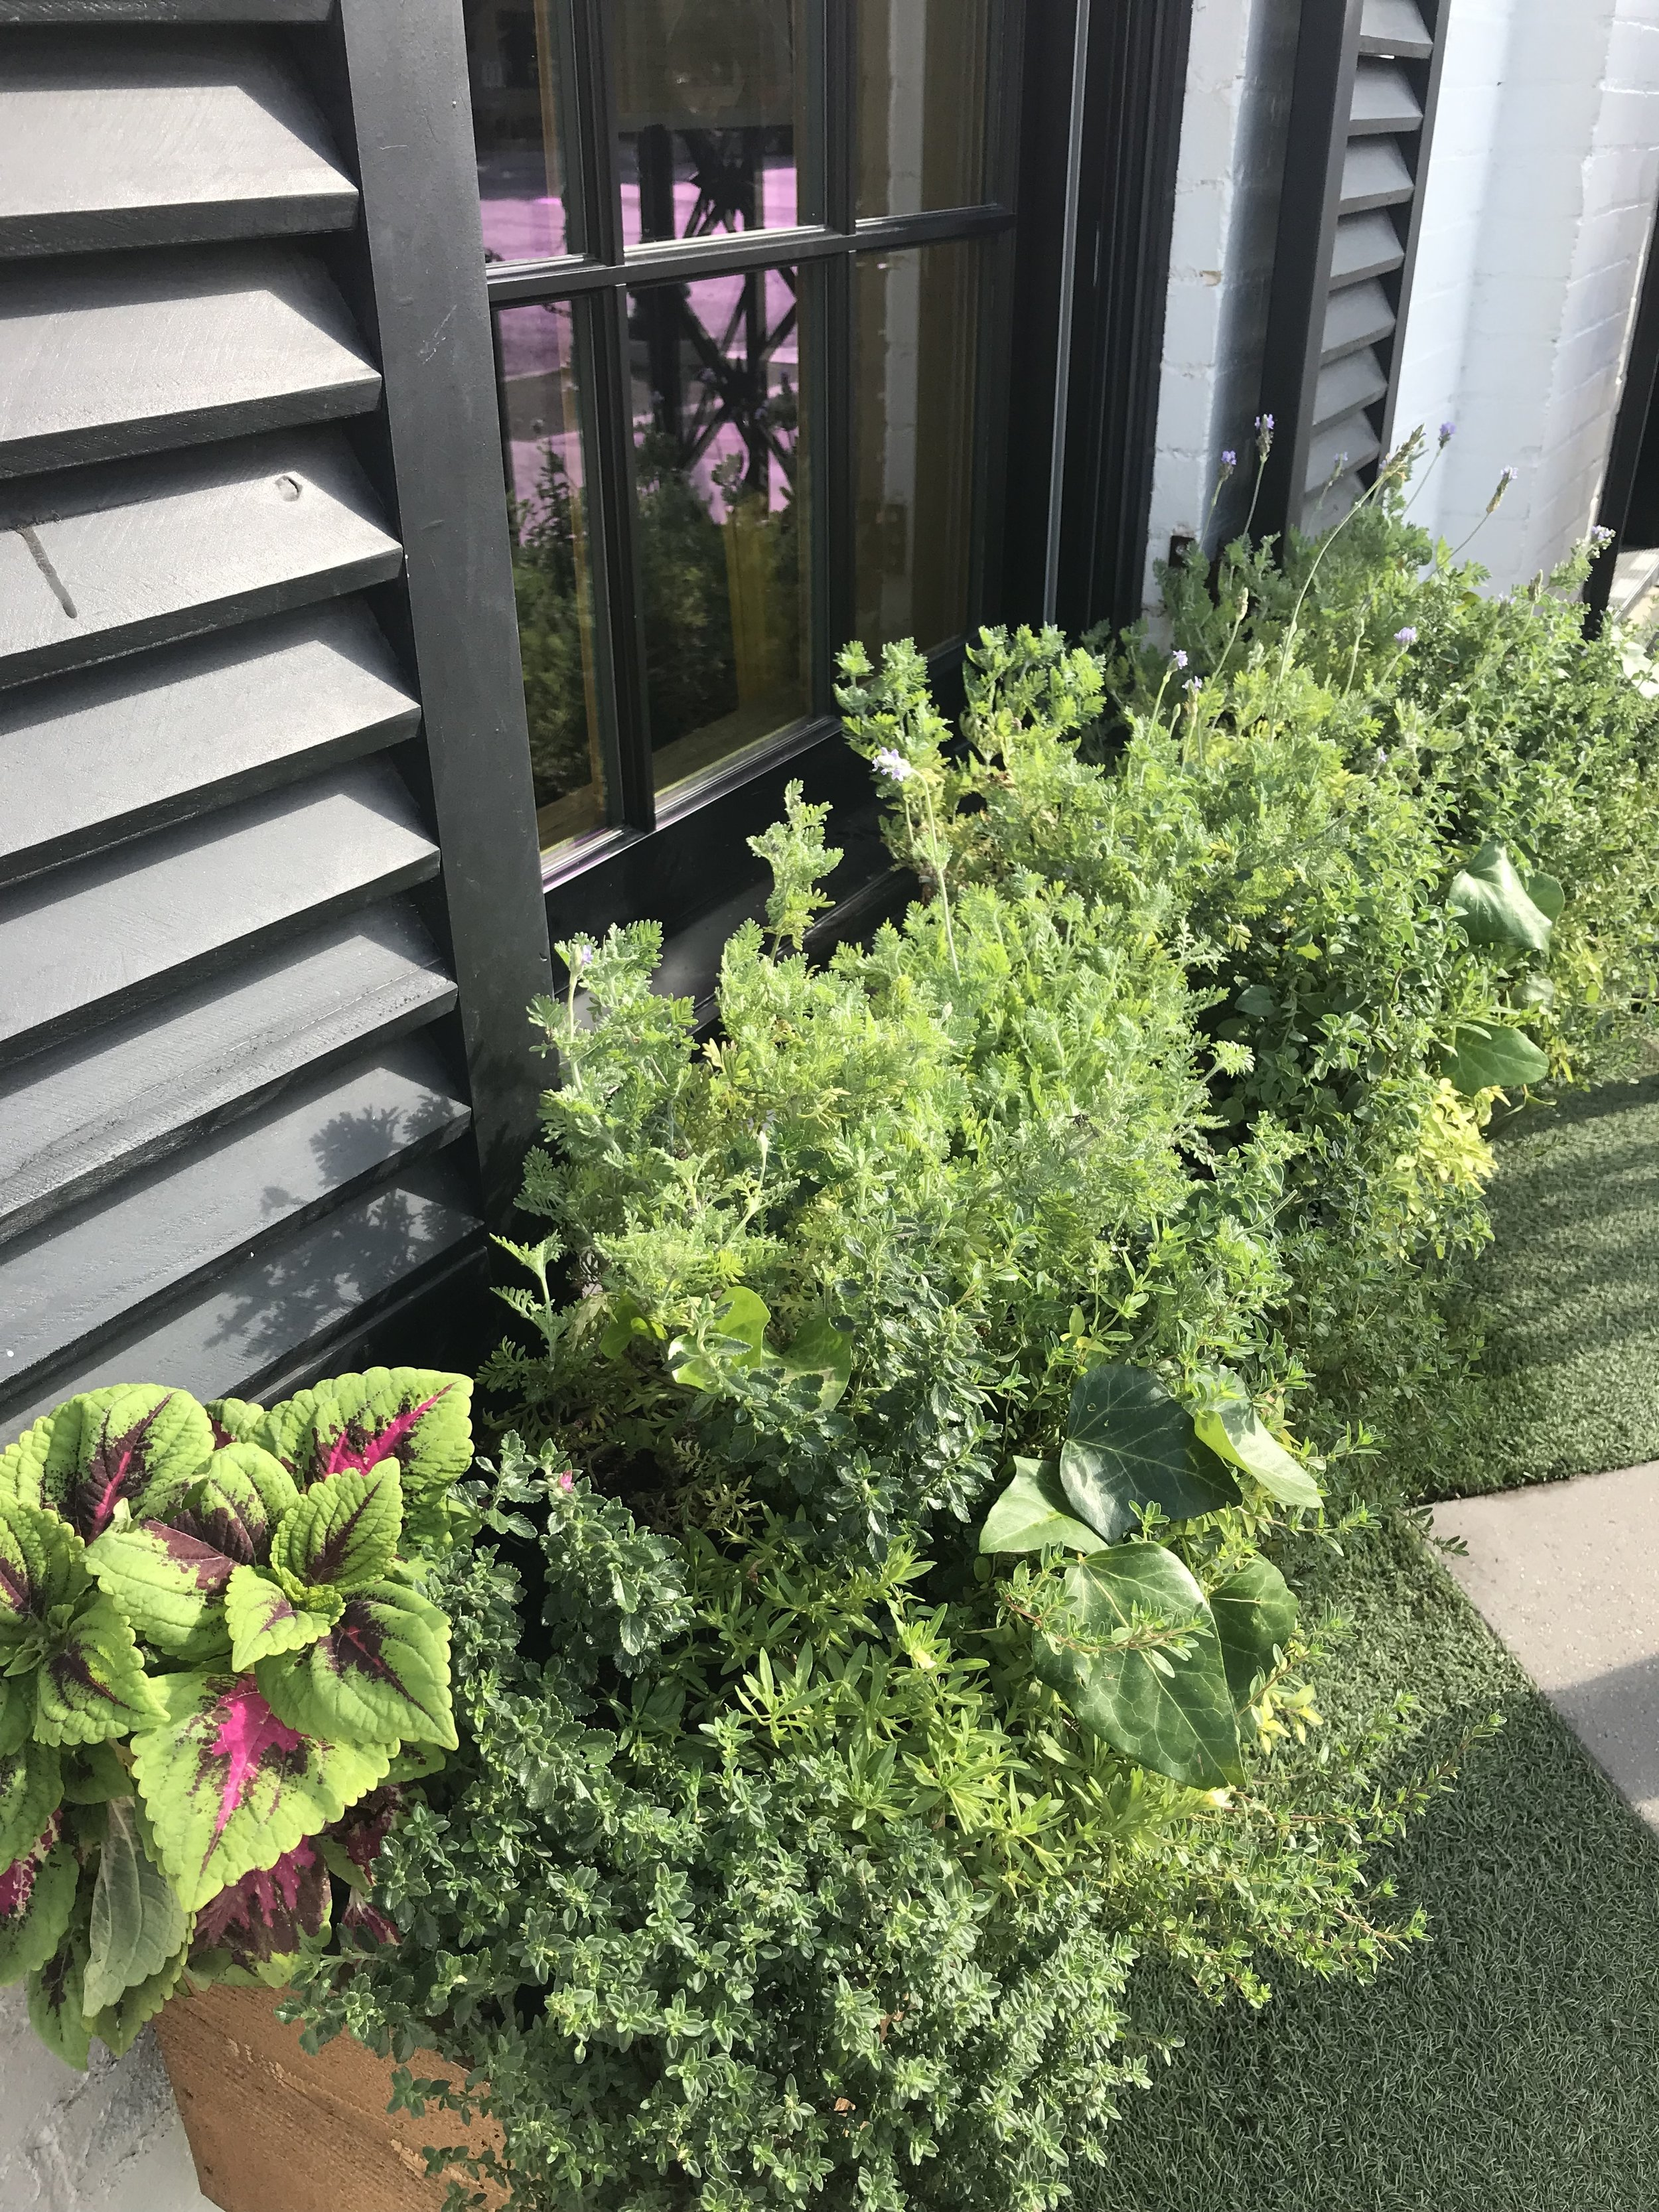 Lovely window boxes outside of the bakery.